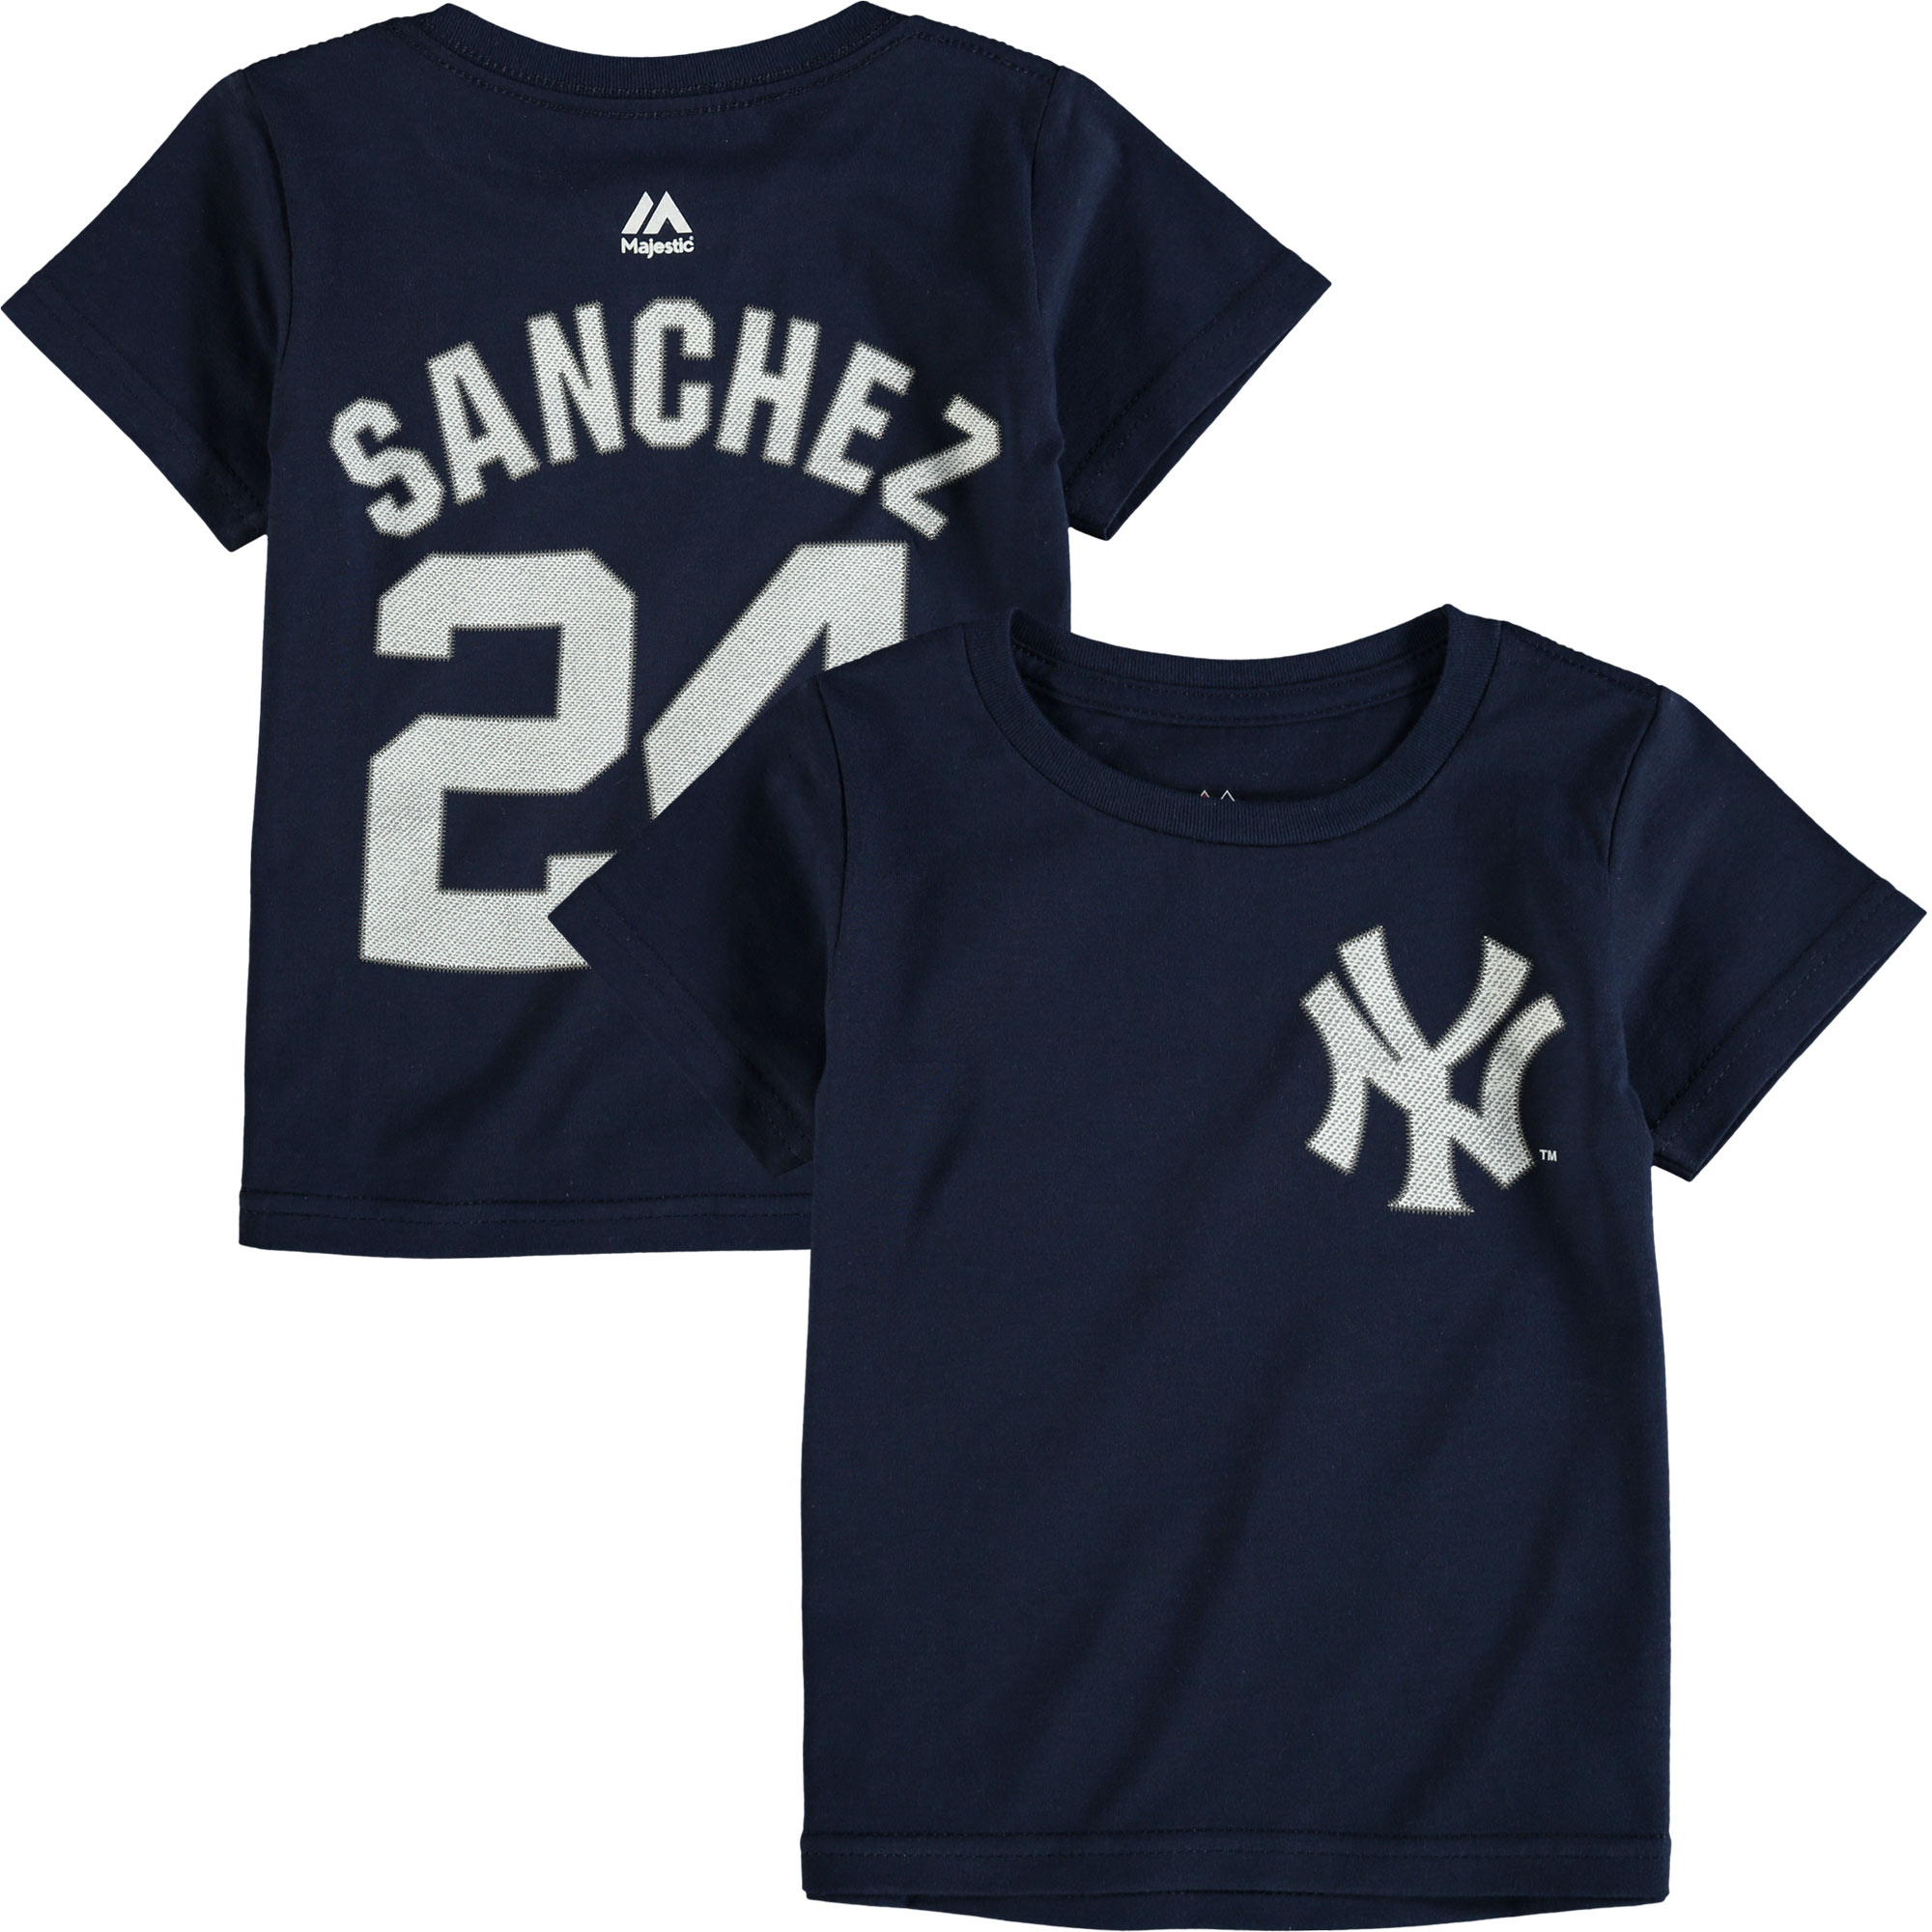 Gary Sanchez New York Yankees Majestic Toddler Player Name and Number T-Shirt - Navy